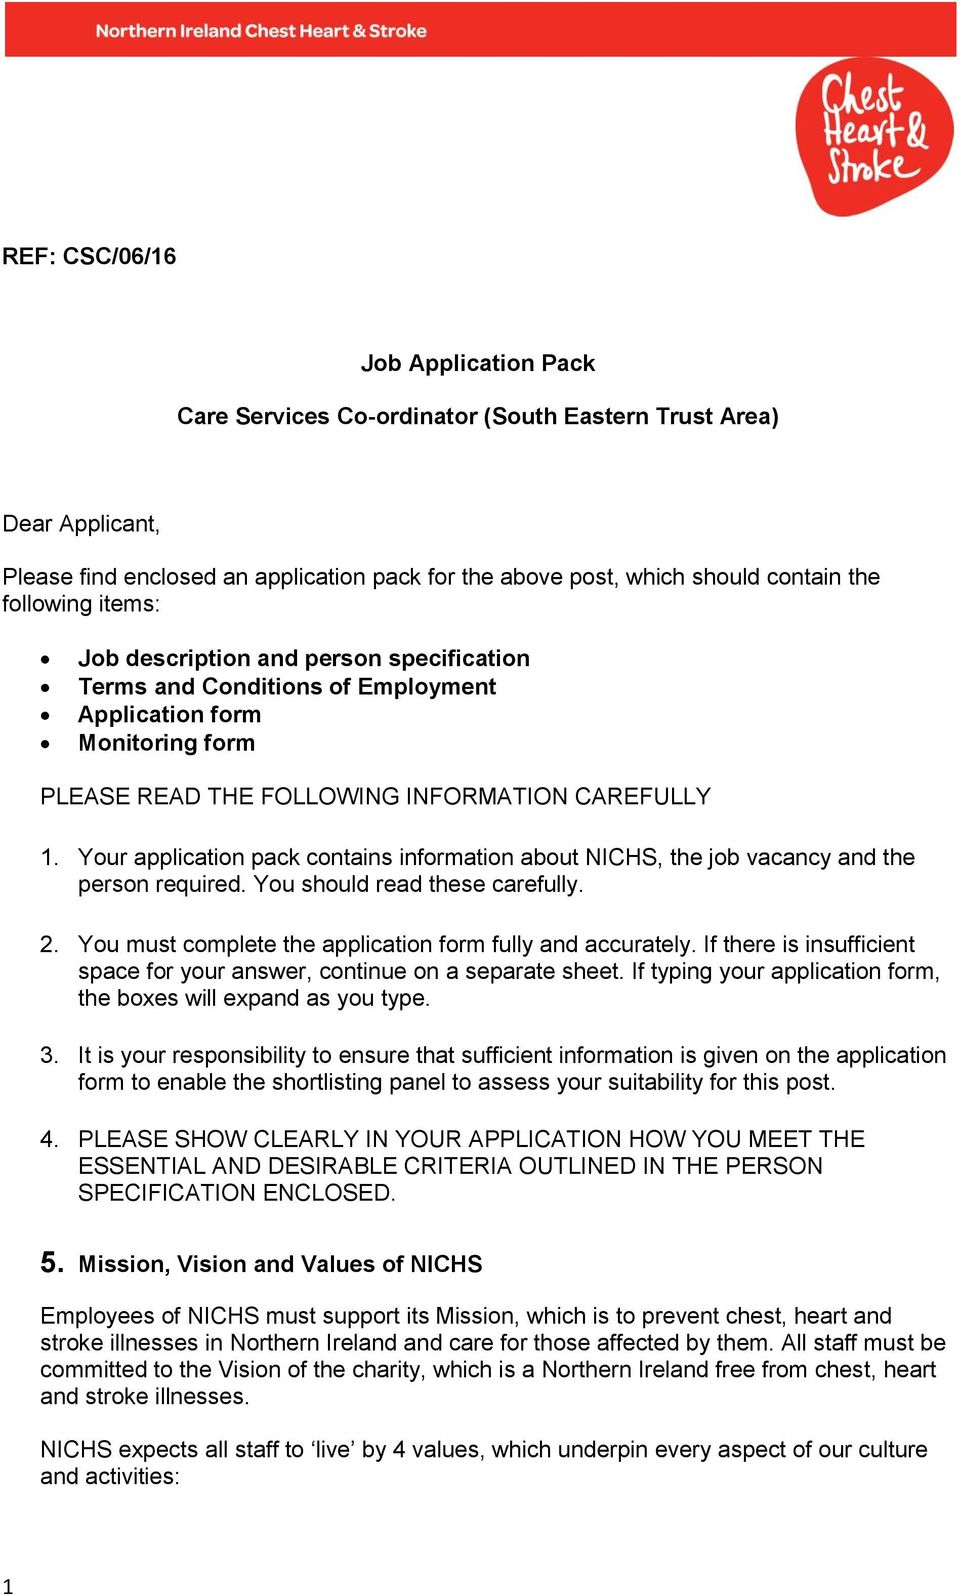 Job Application Pack. Care Services Co-ordinator (South Eastern ...